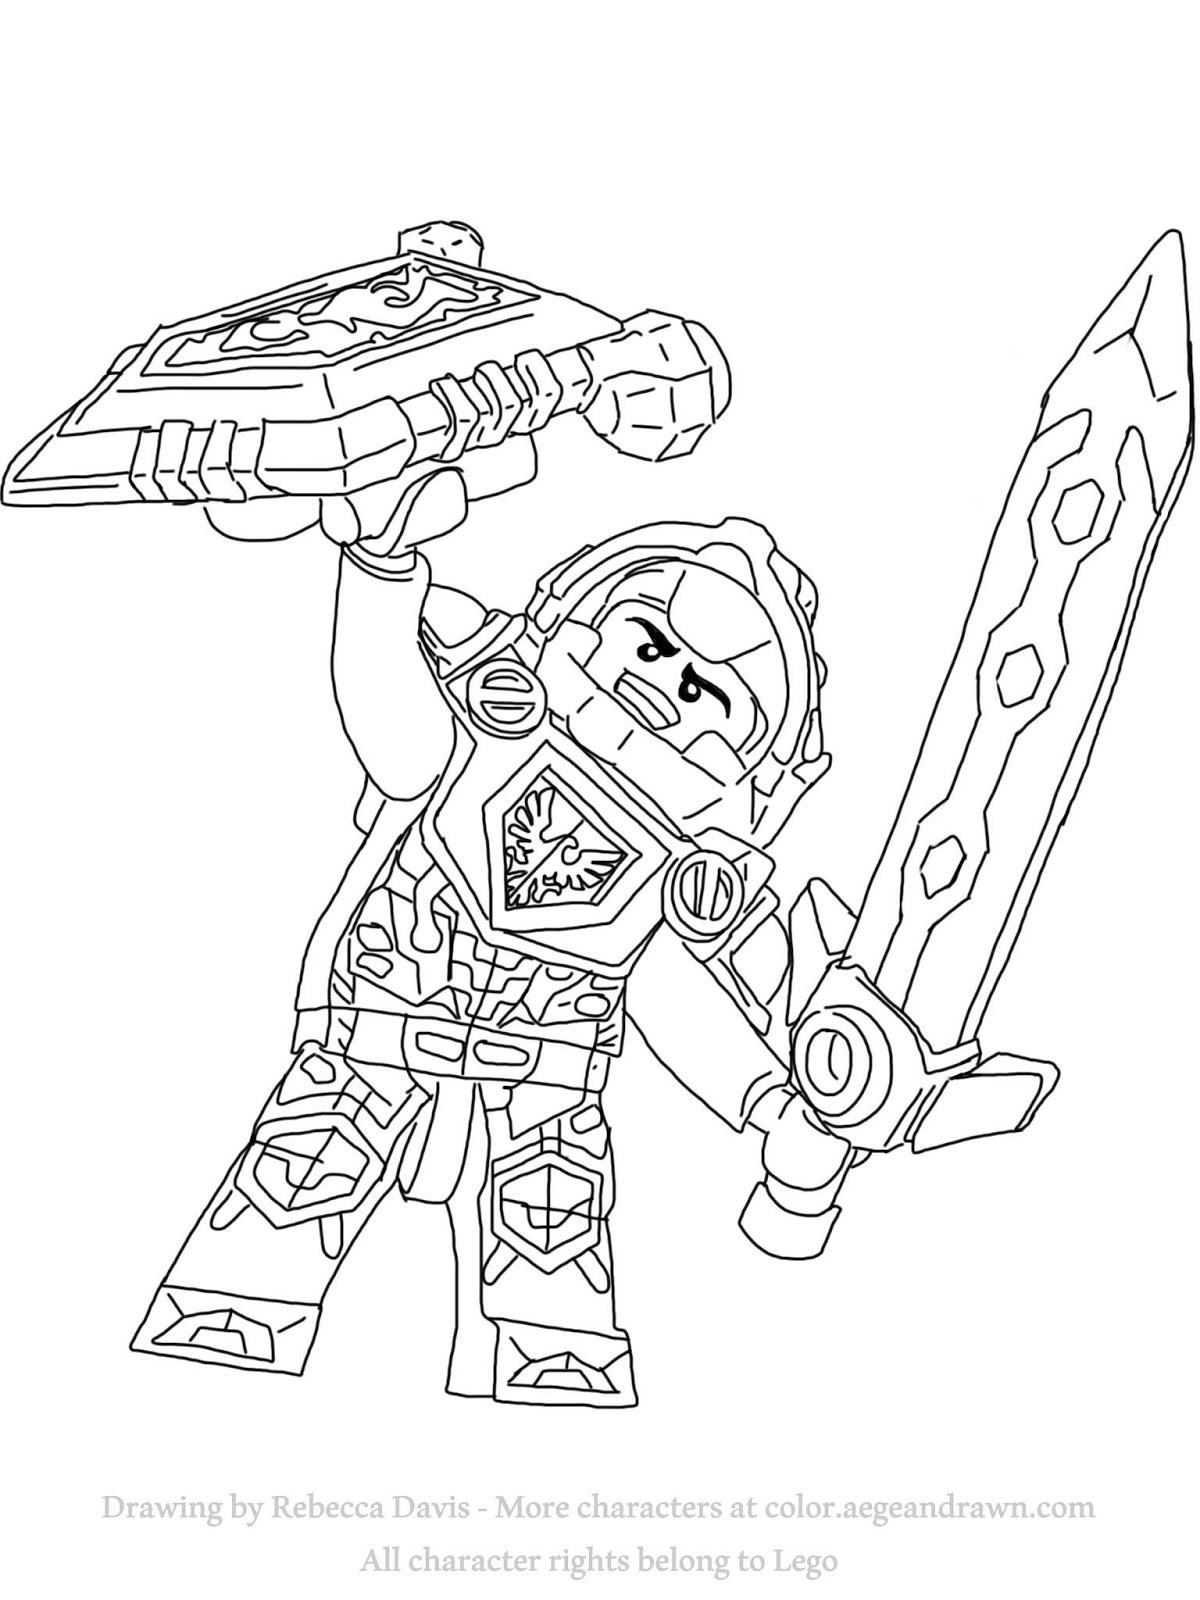 28 Lego Star Wars Coloring Pages Selection | FREE COLORING PAGES ...